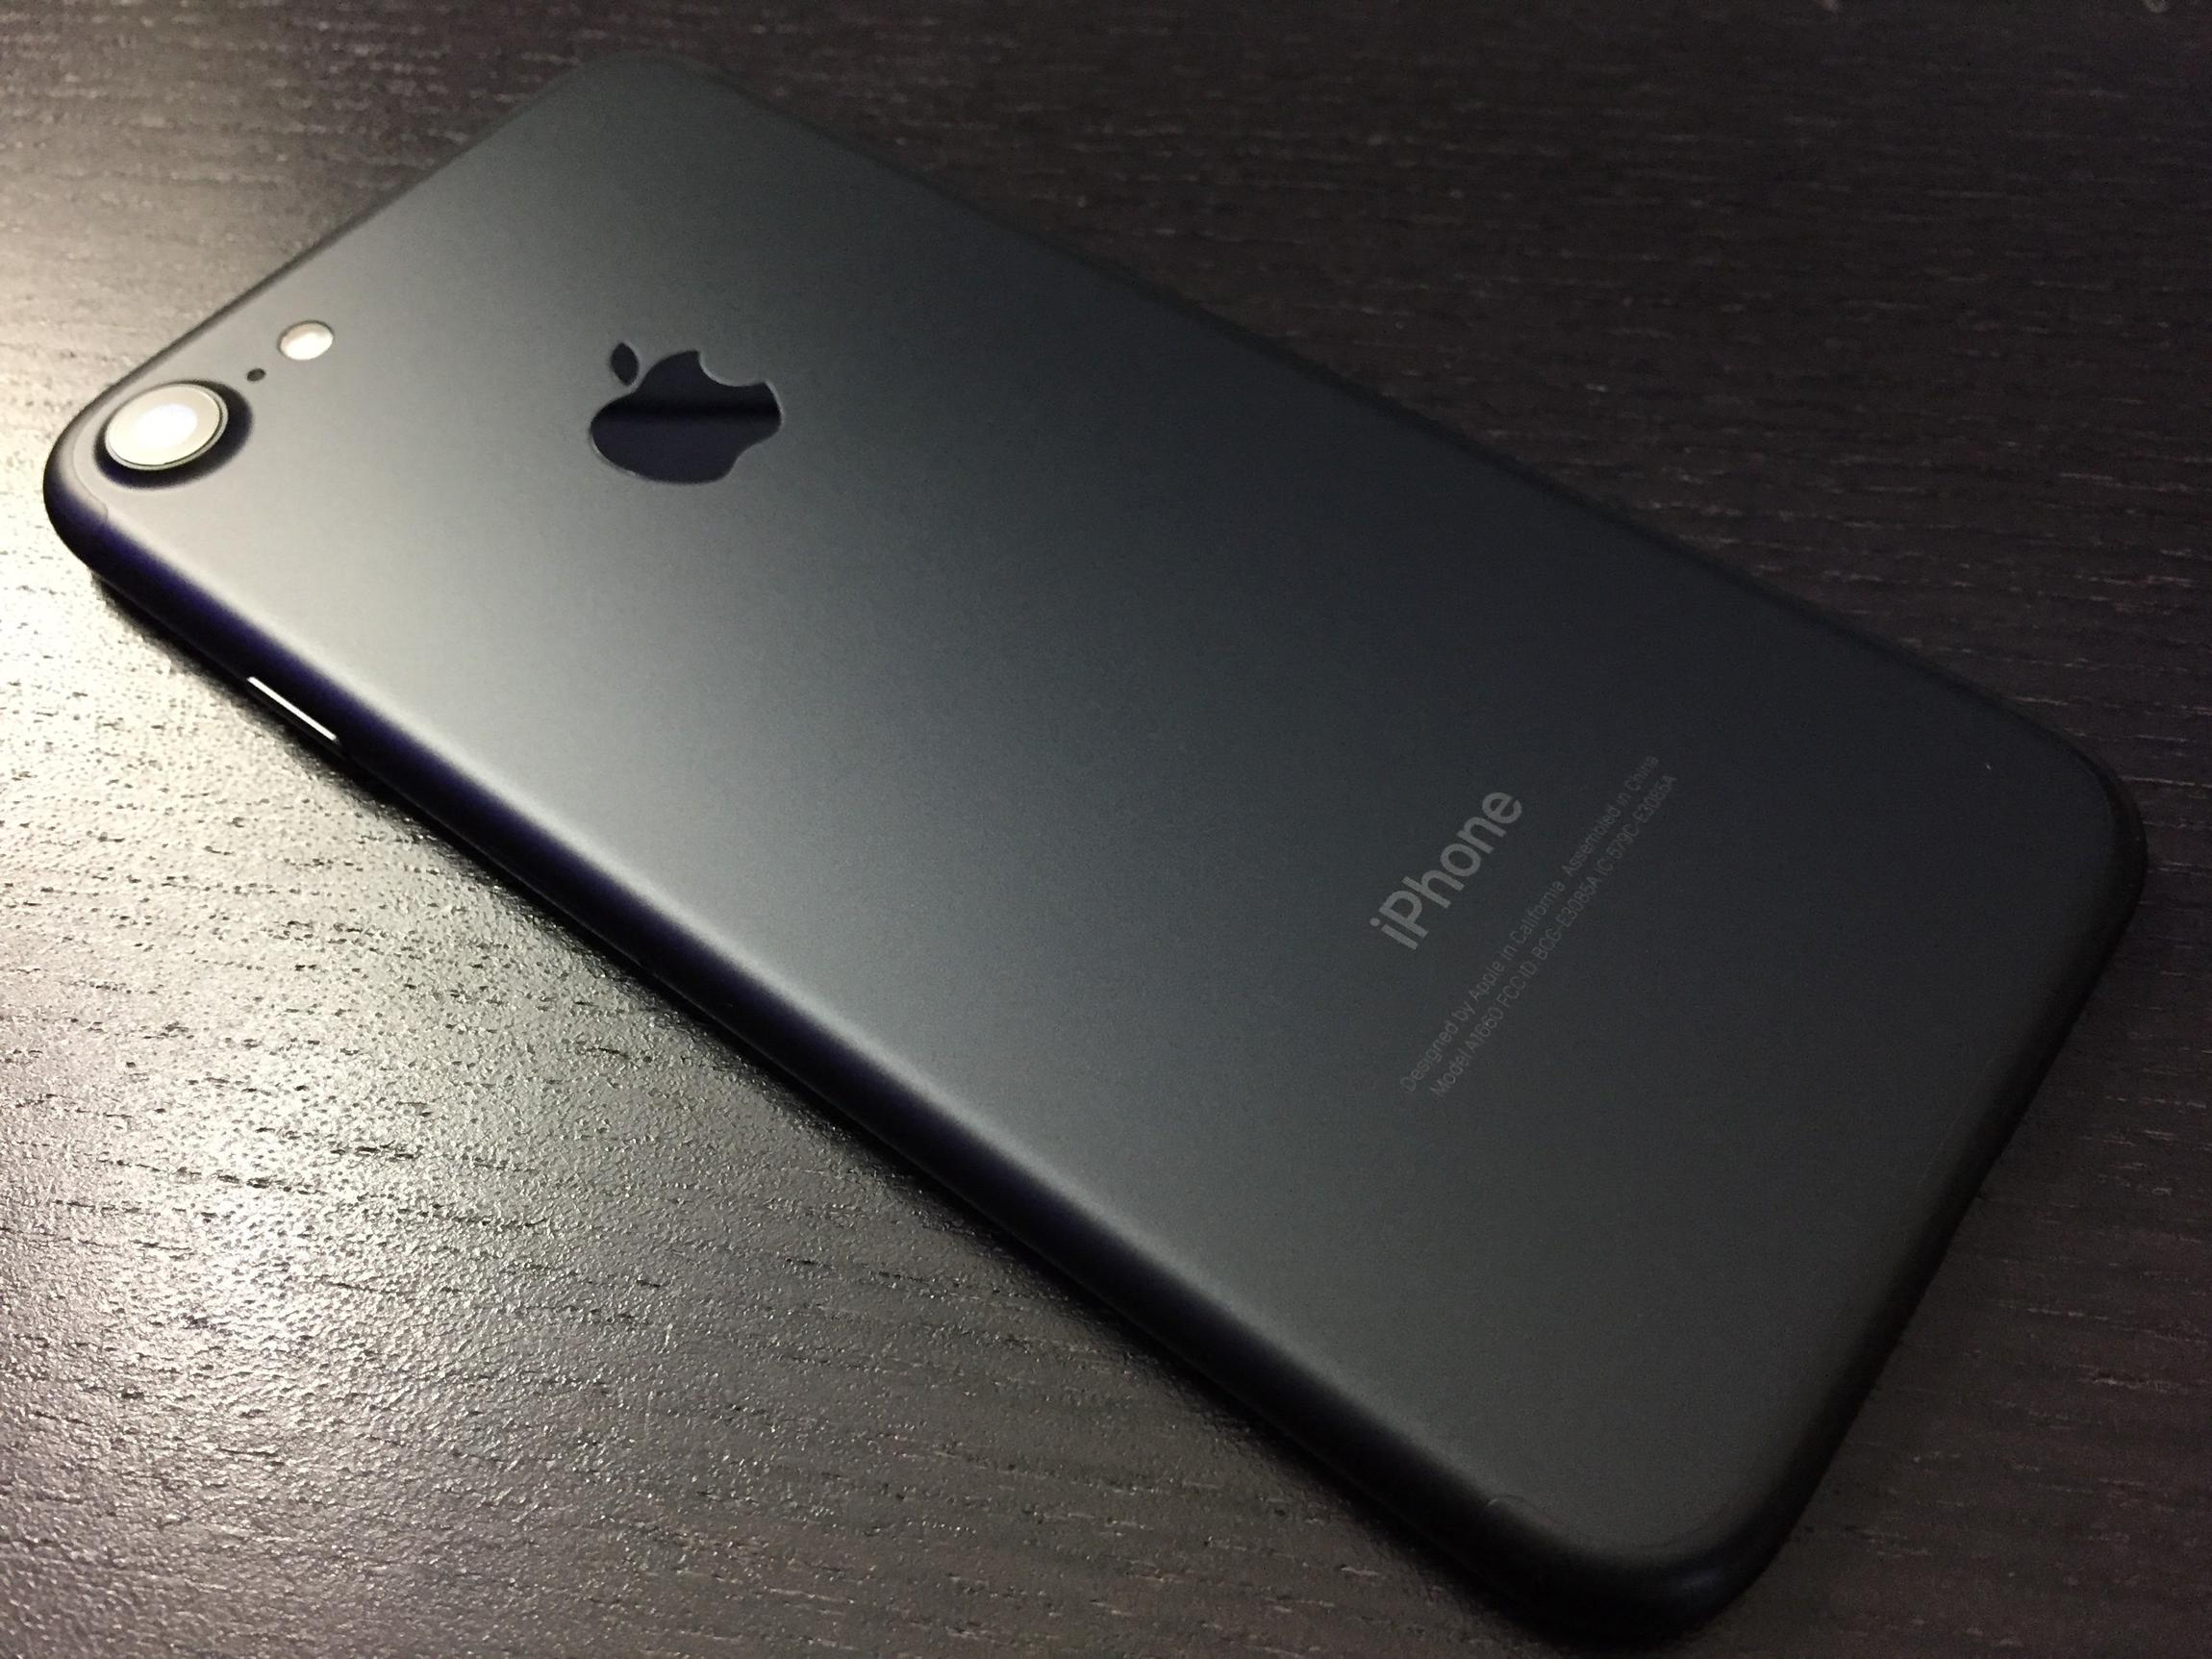 iPhone 7 Matte Black surface finish  - Materials and